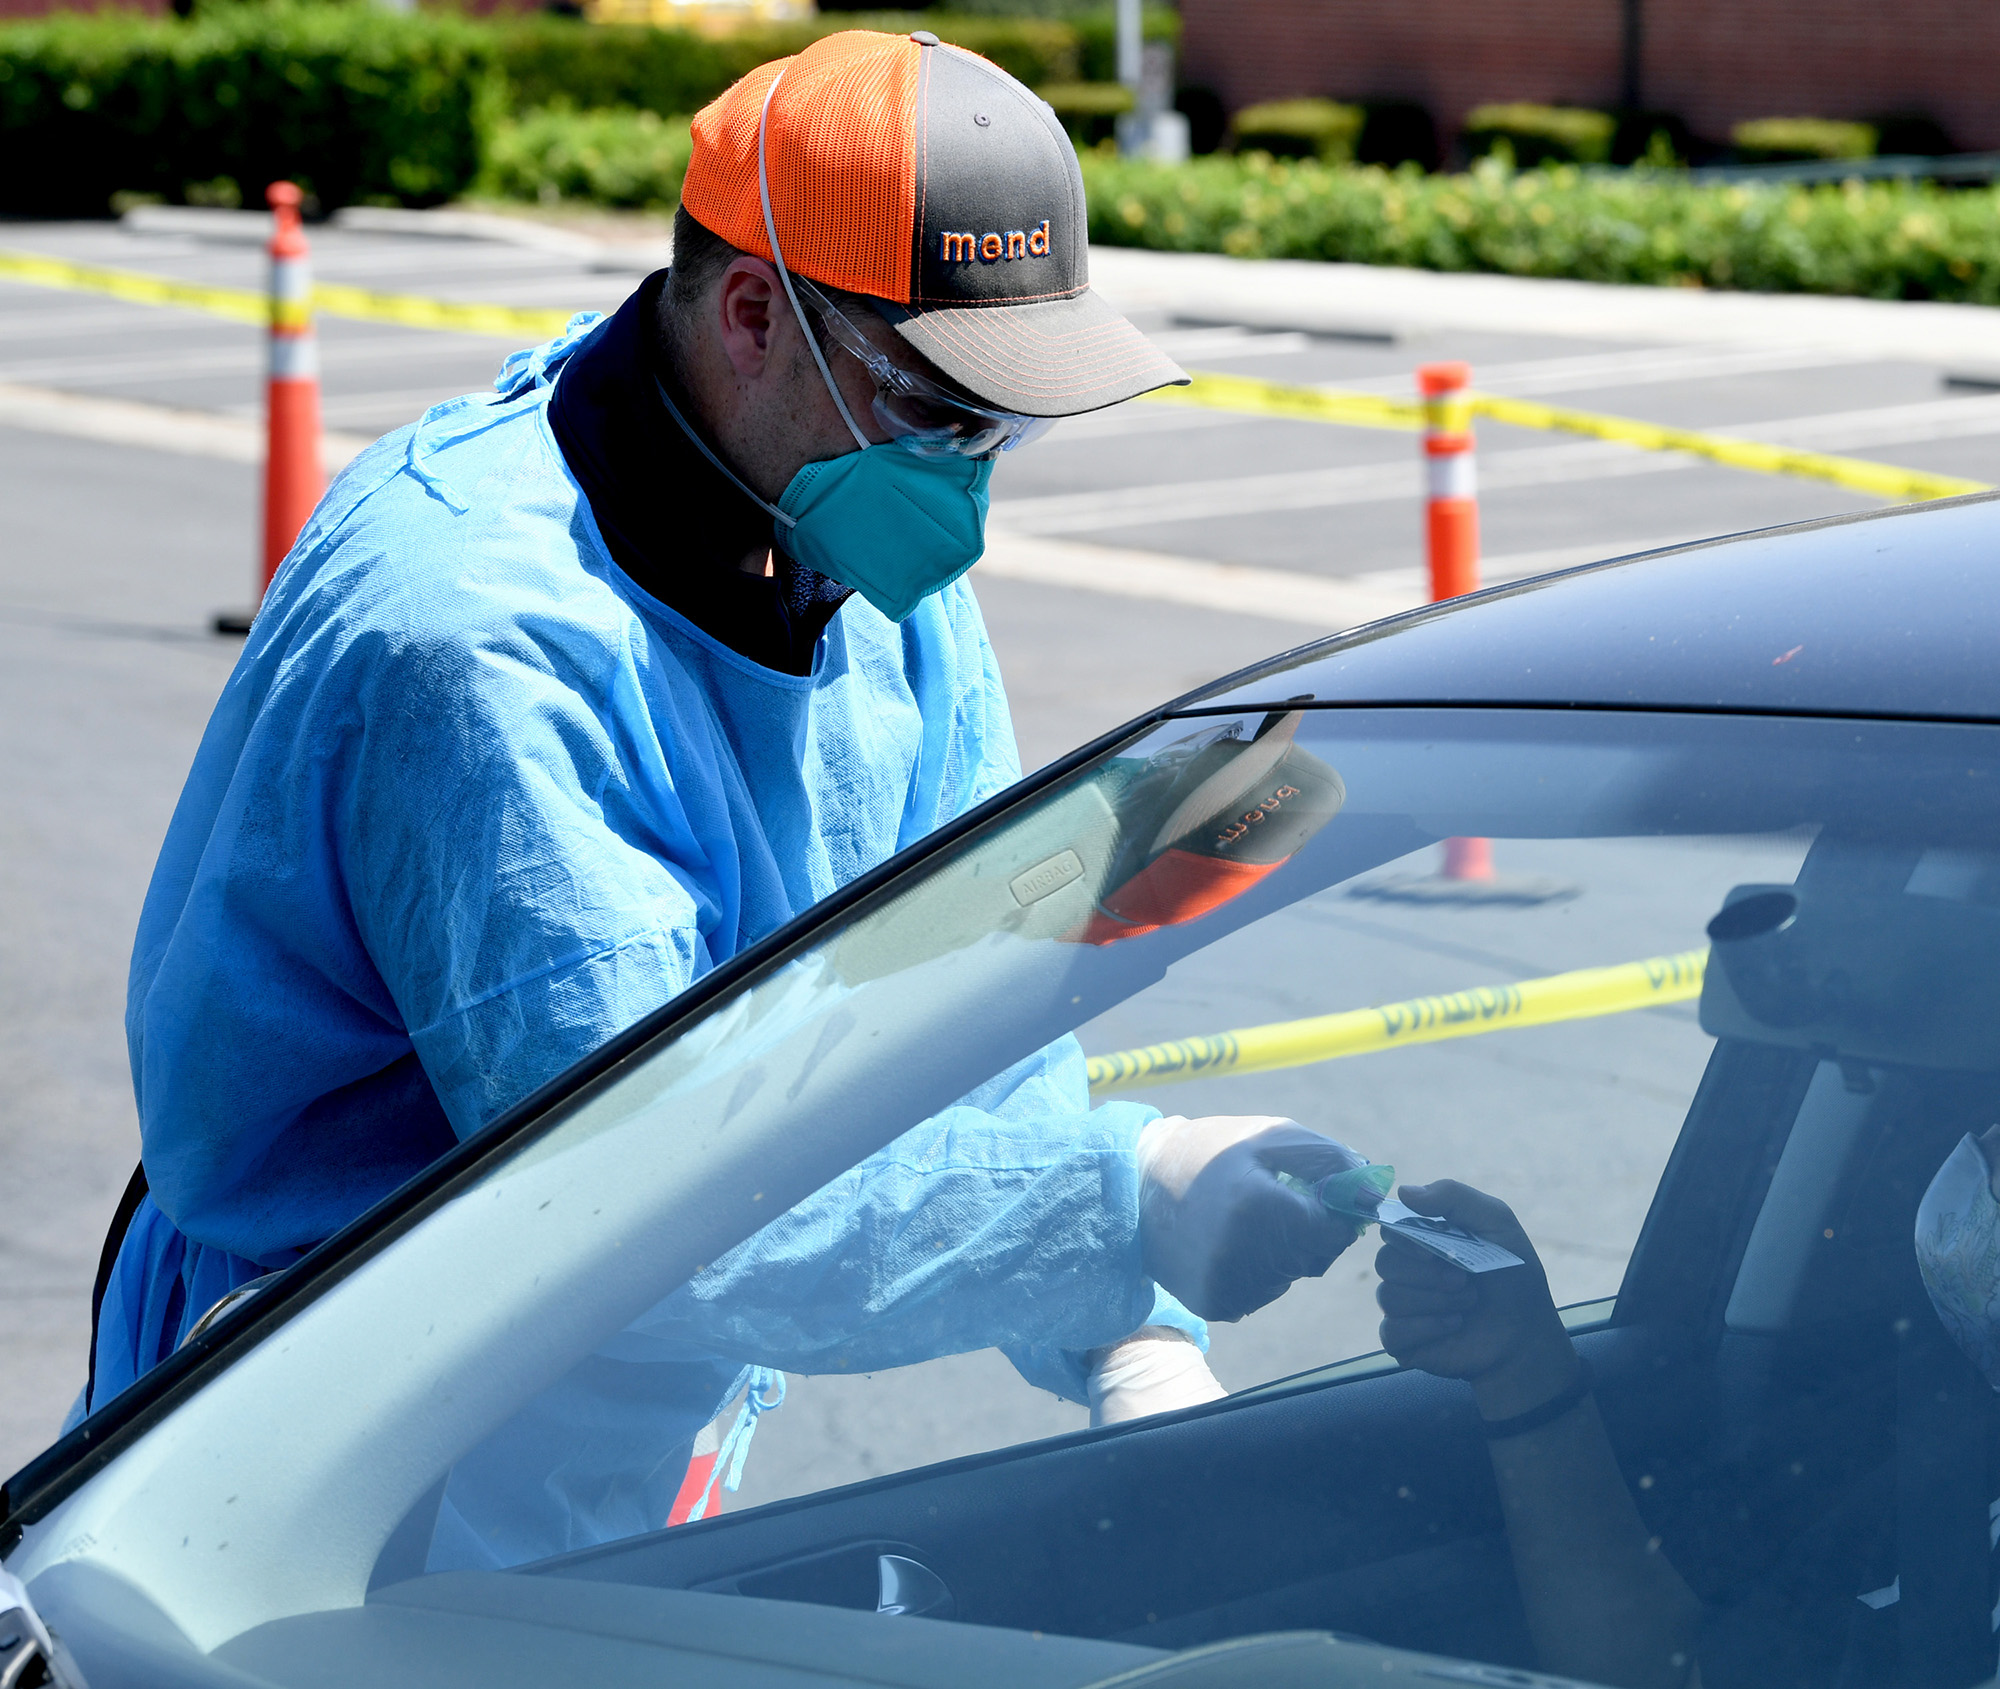 Mend Urgent Care workers perform drive-up COVID-19 testing on August 24, in Burbank, California.